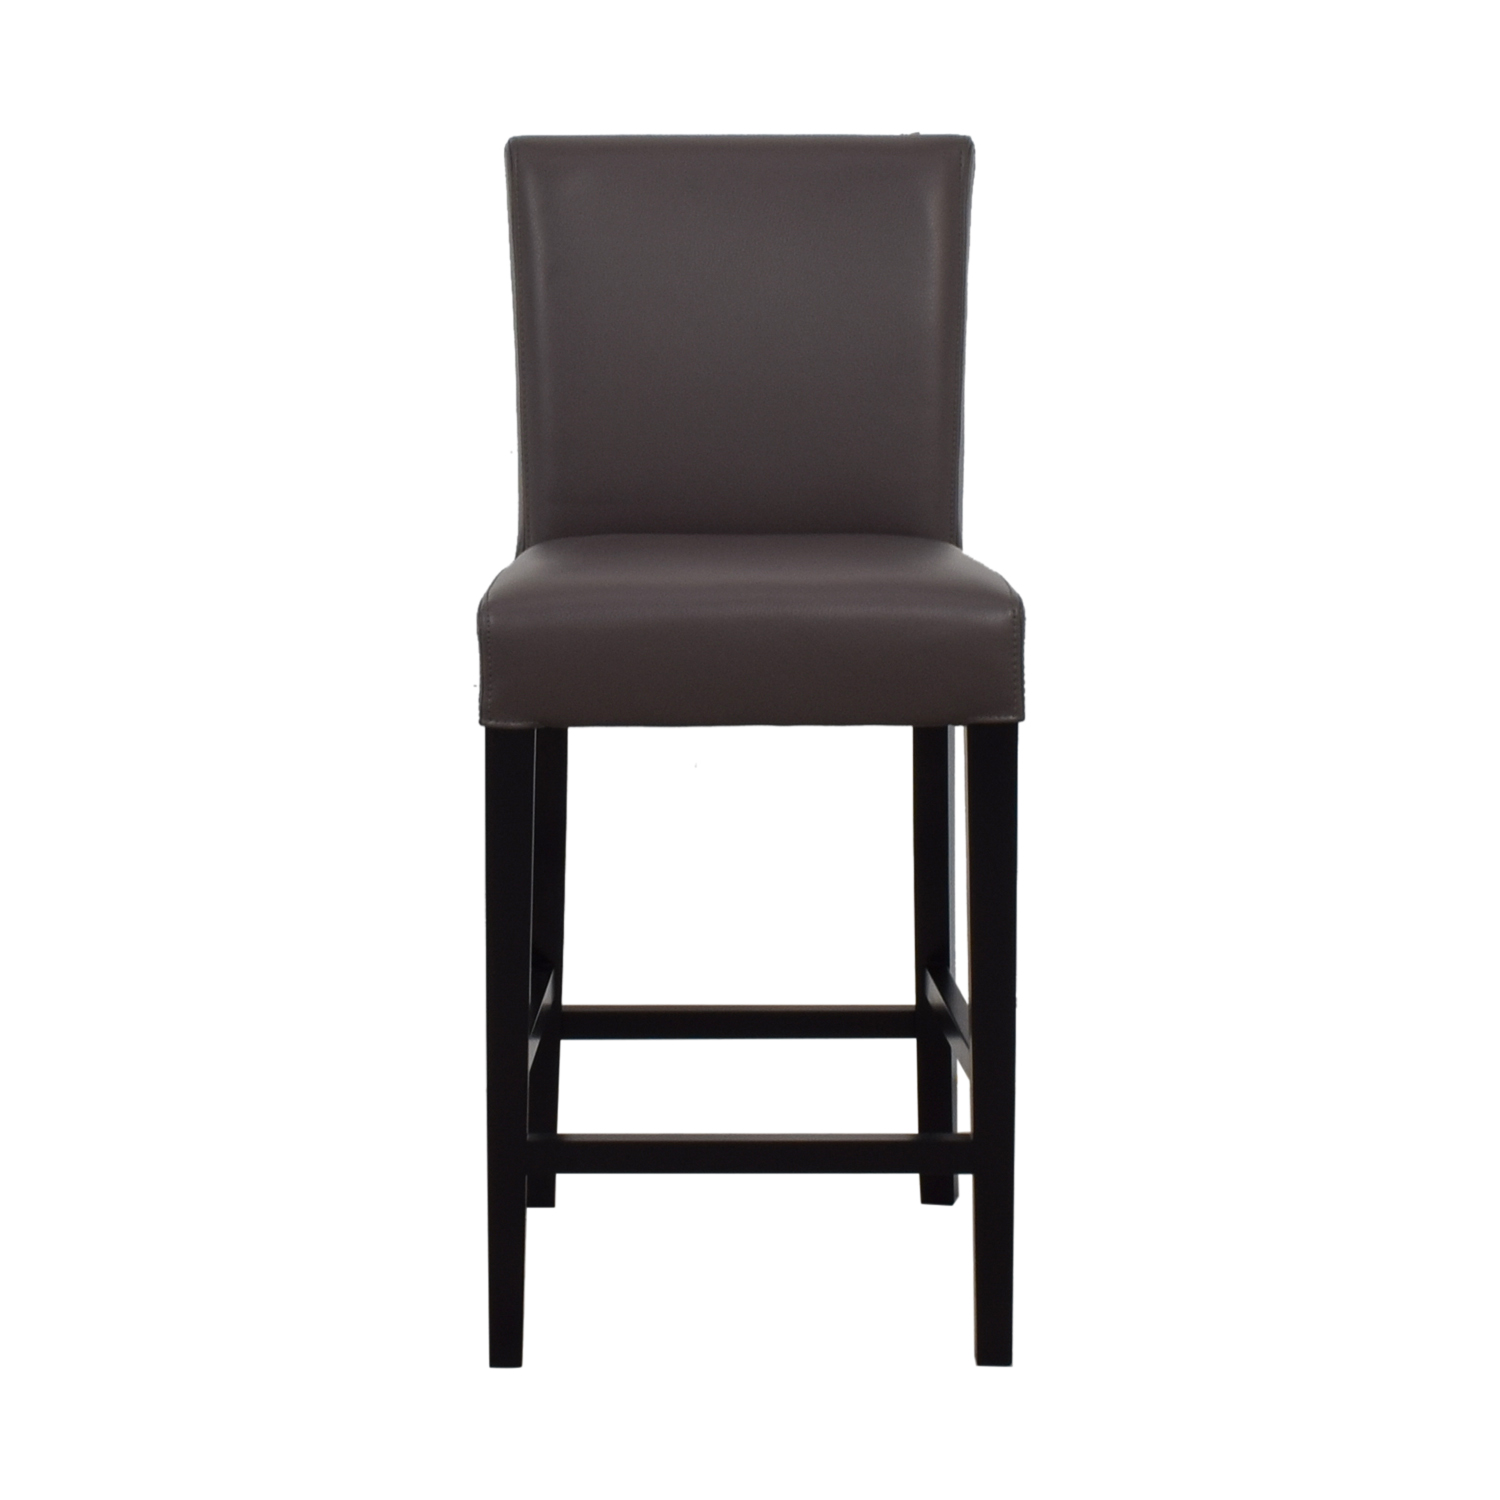 buy Crate & Barrel Lowe Leather Counter Stool Crate & Barrel Sofas